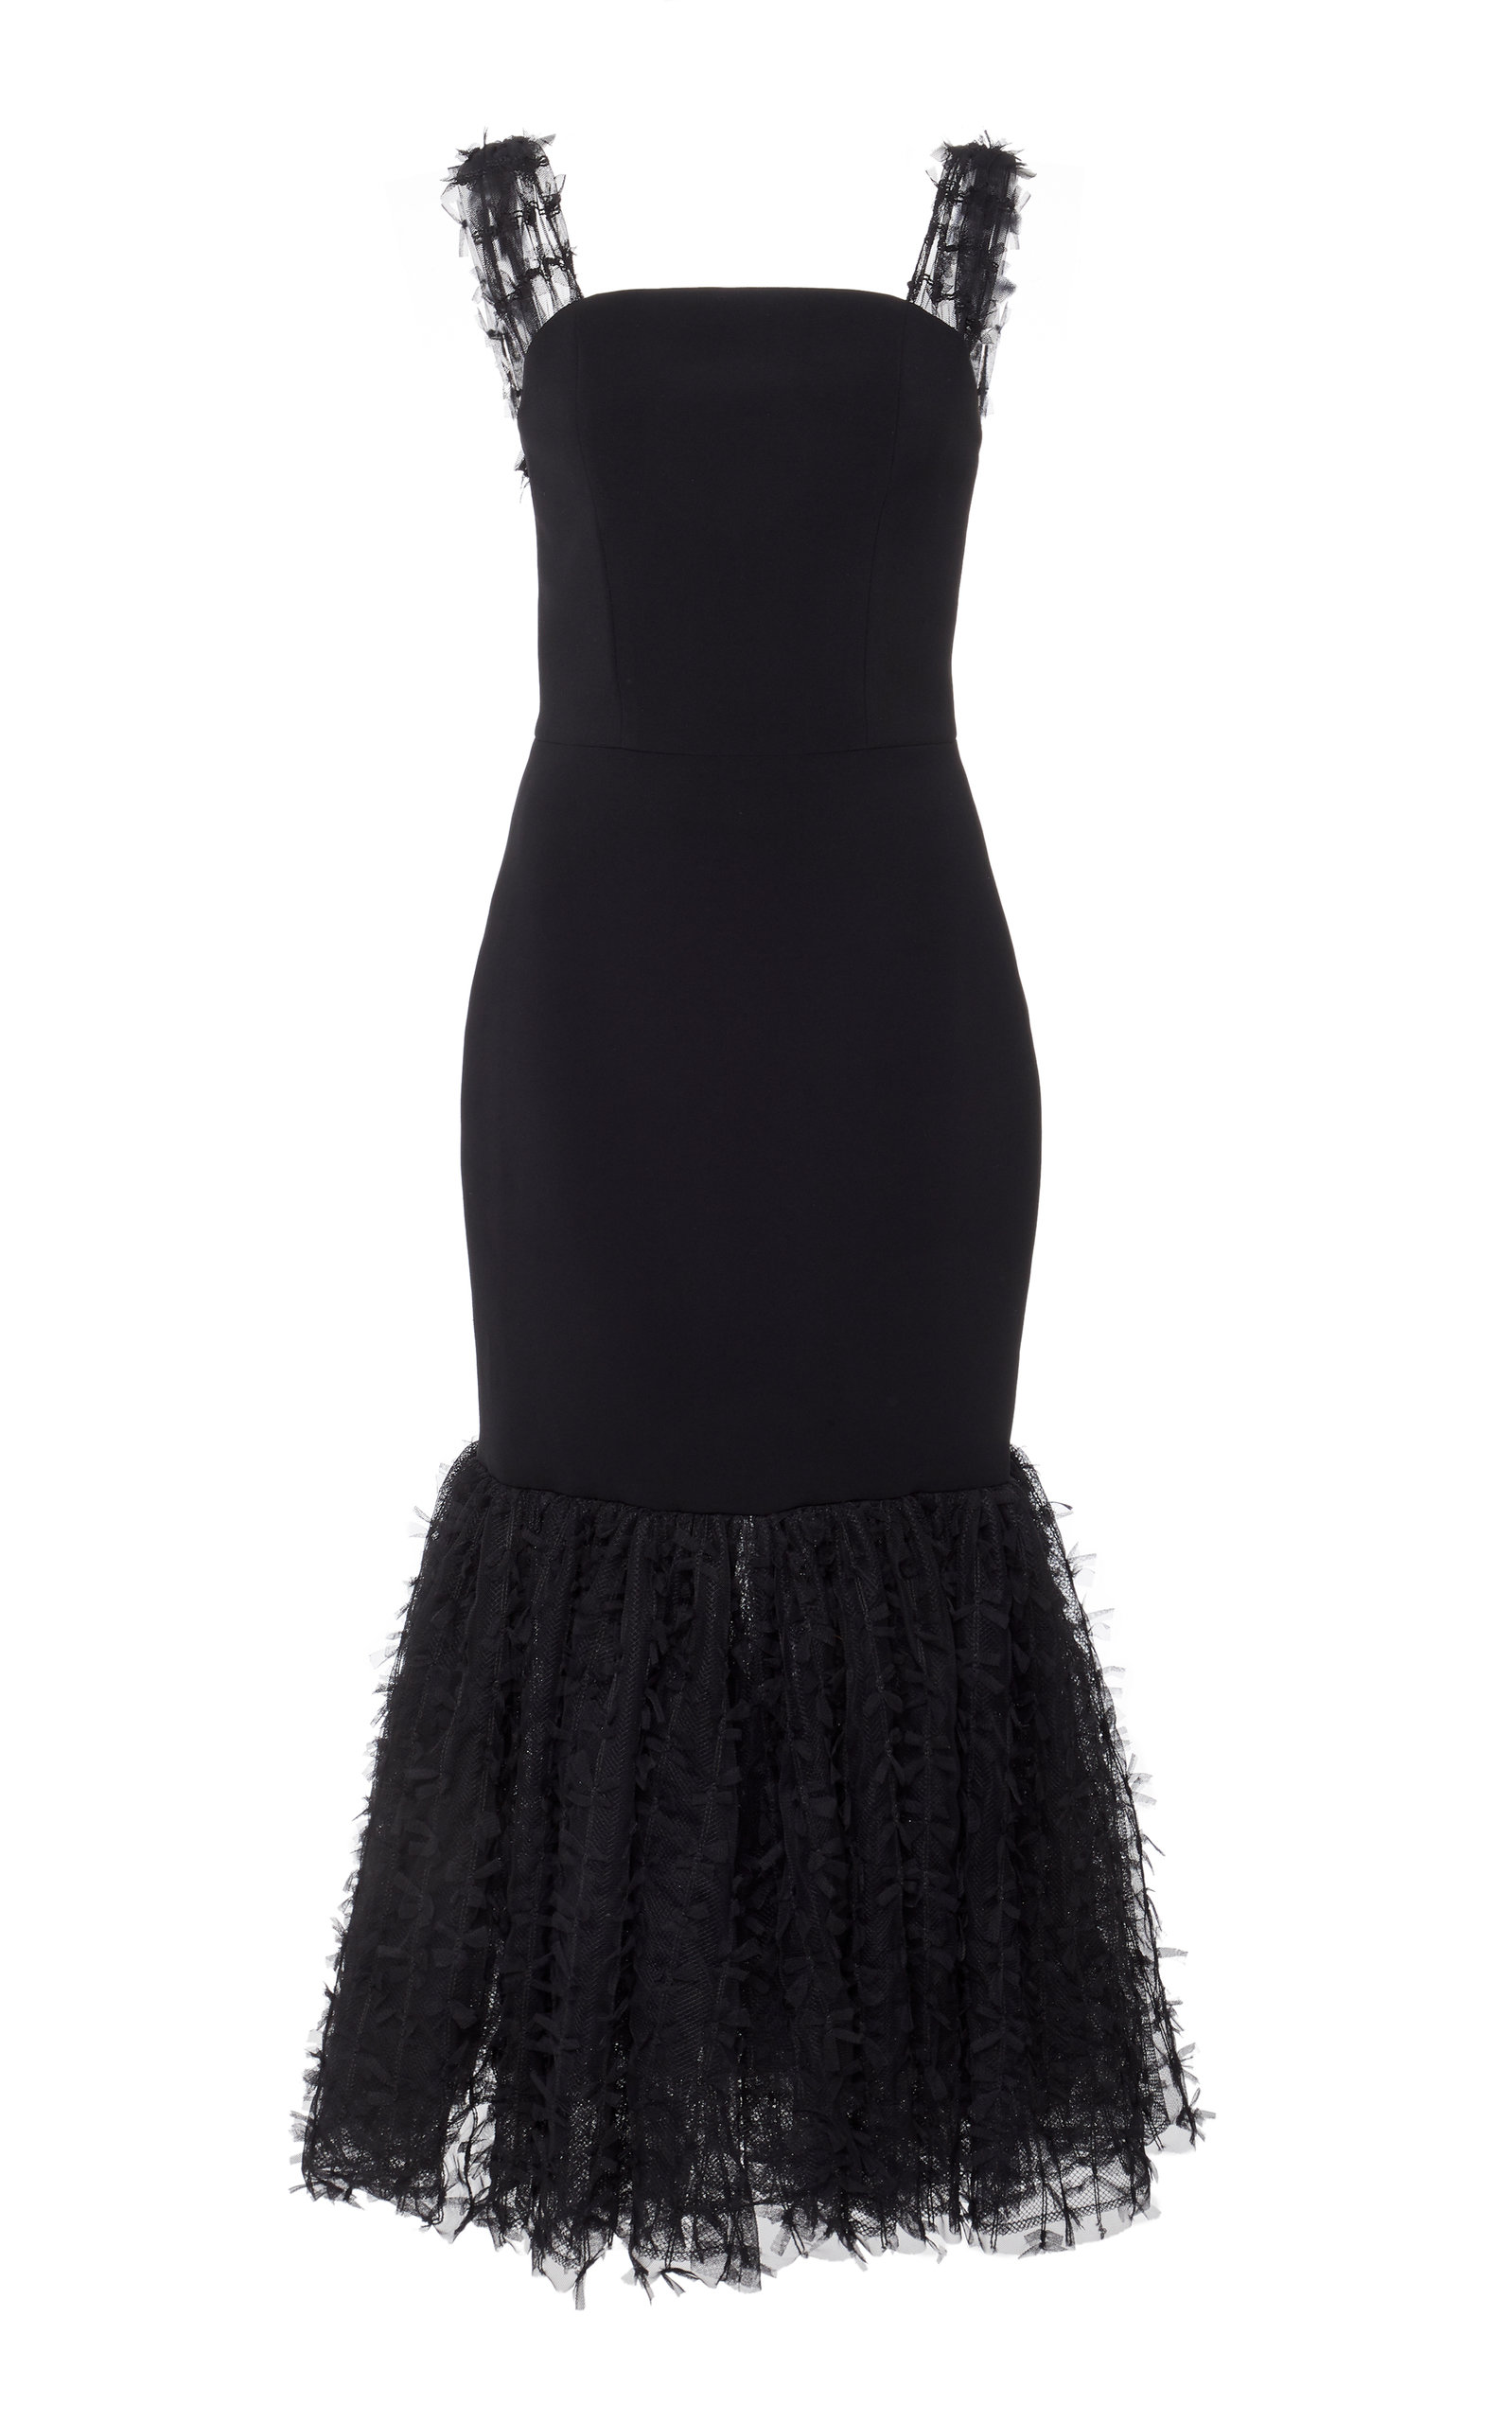 Christian Siriano BLACK MID LENGTH CREPE DRESS